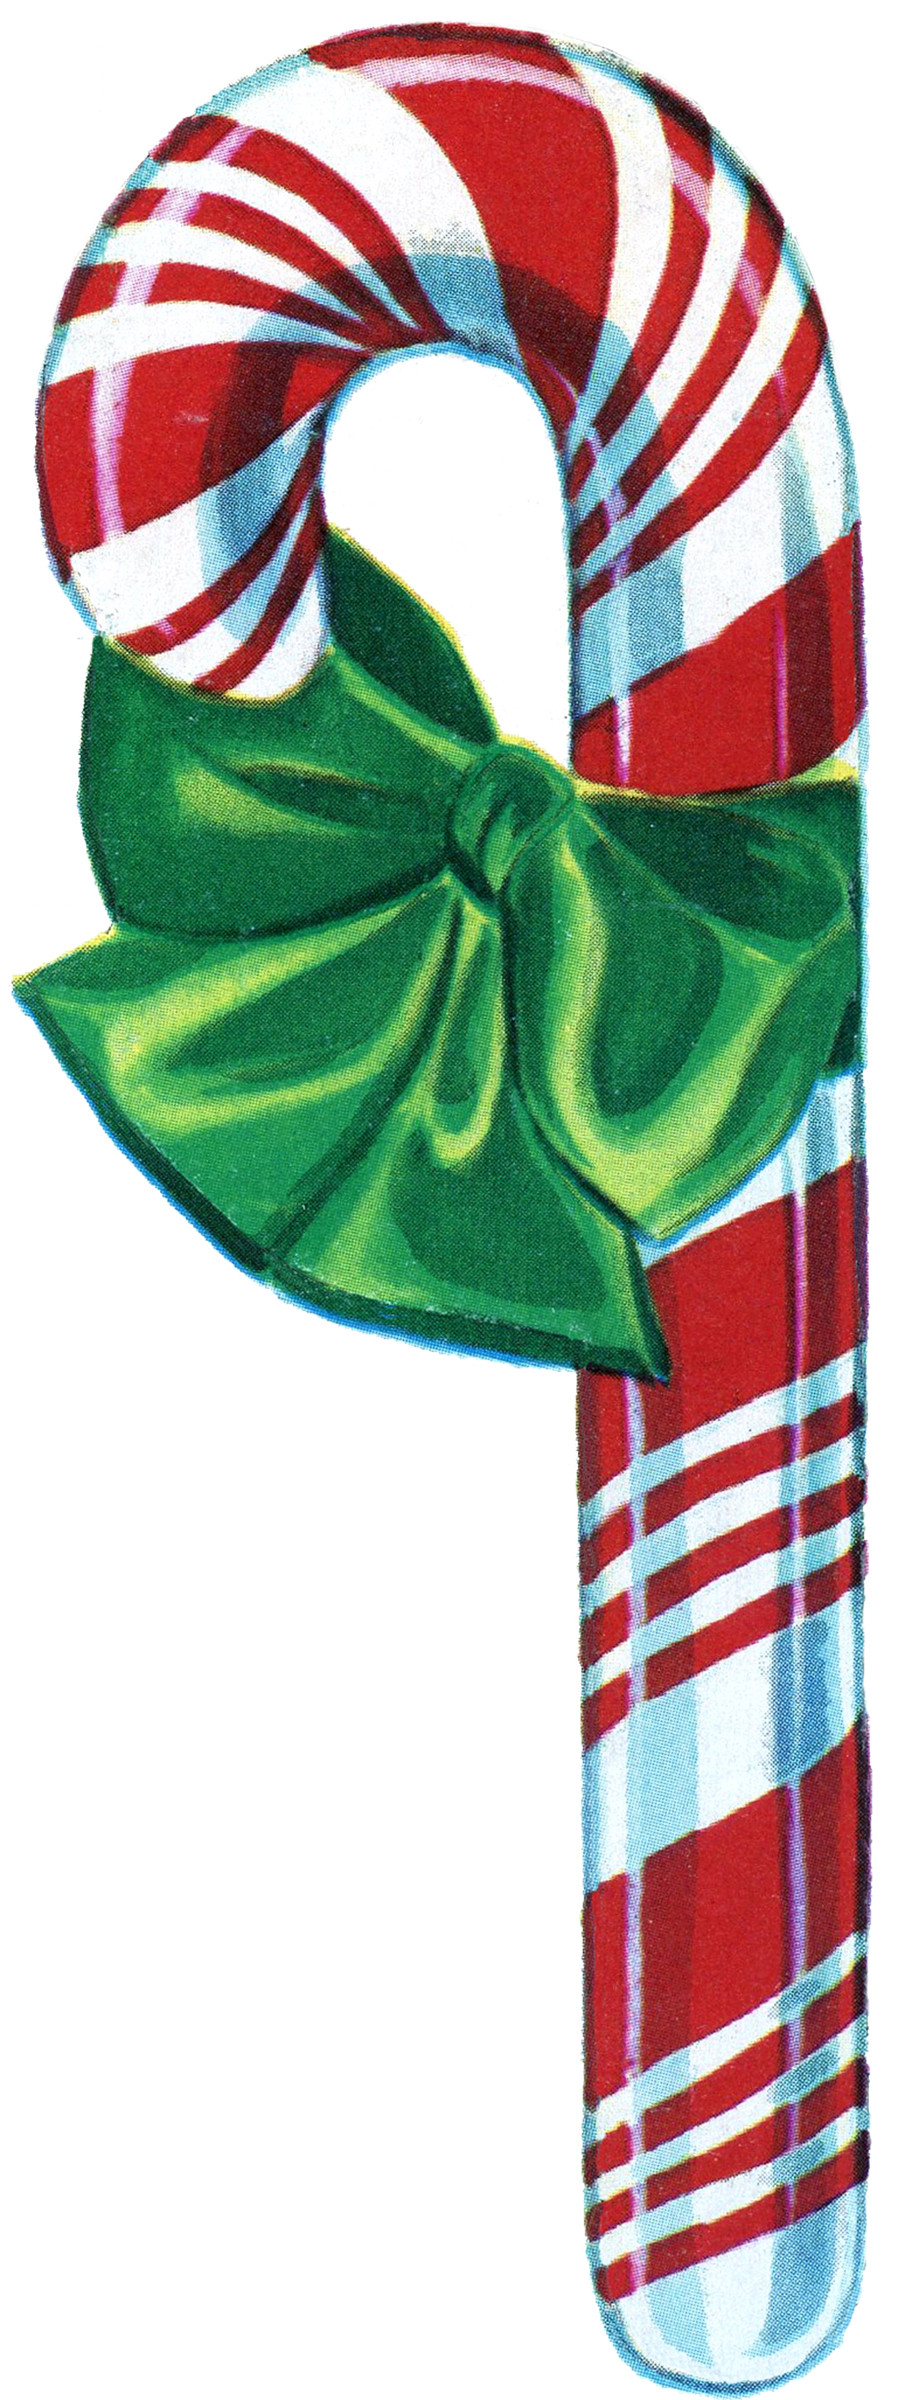 Christmas Candy Canes  Free Vintage Christmas Clip Art Candy Cane The